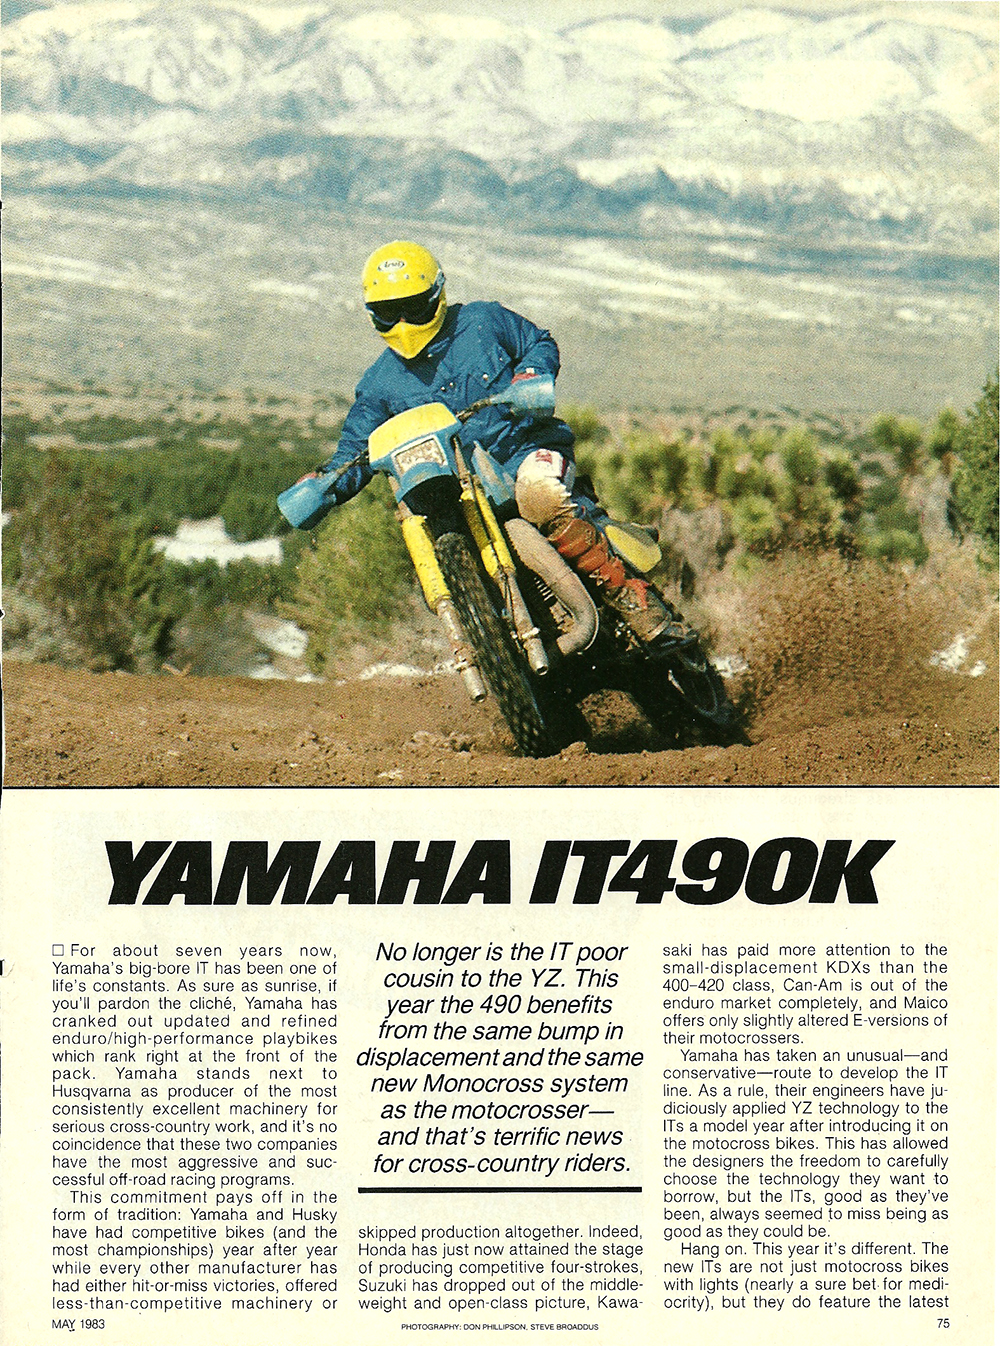 1983 Yamaha IT490K road test 1.jpg